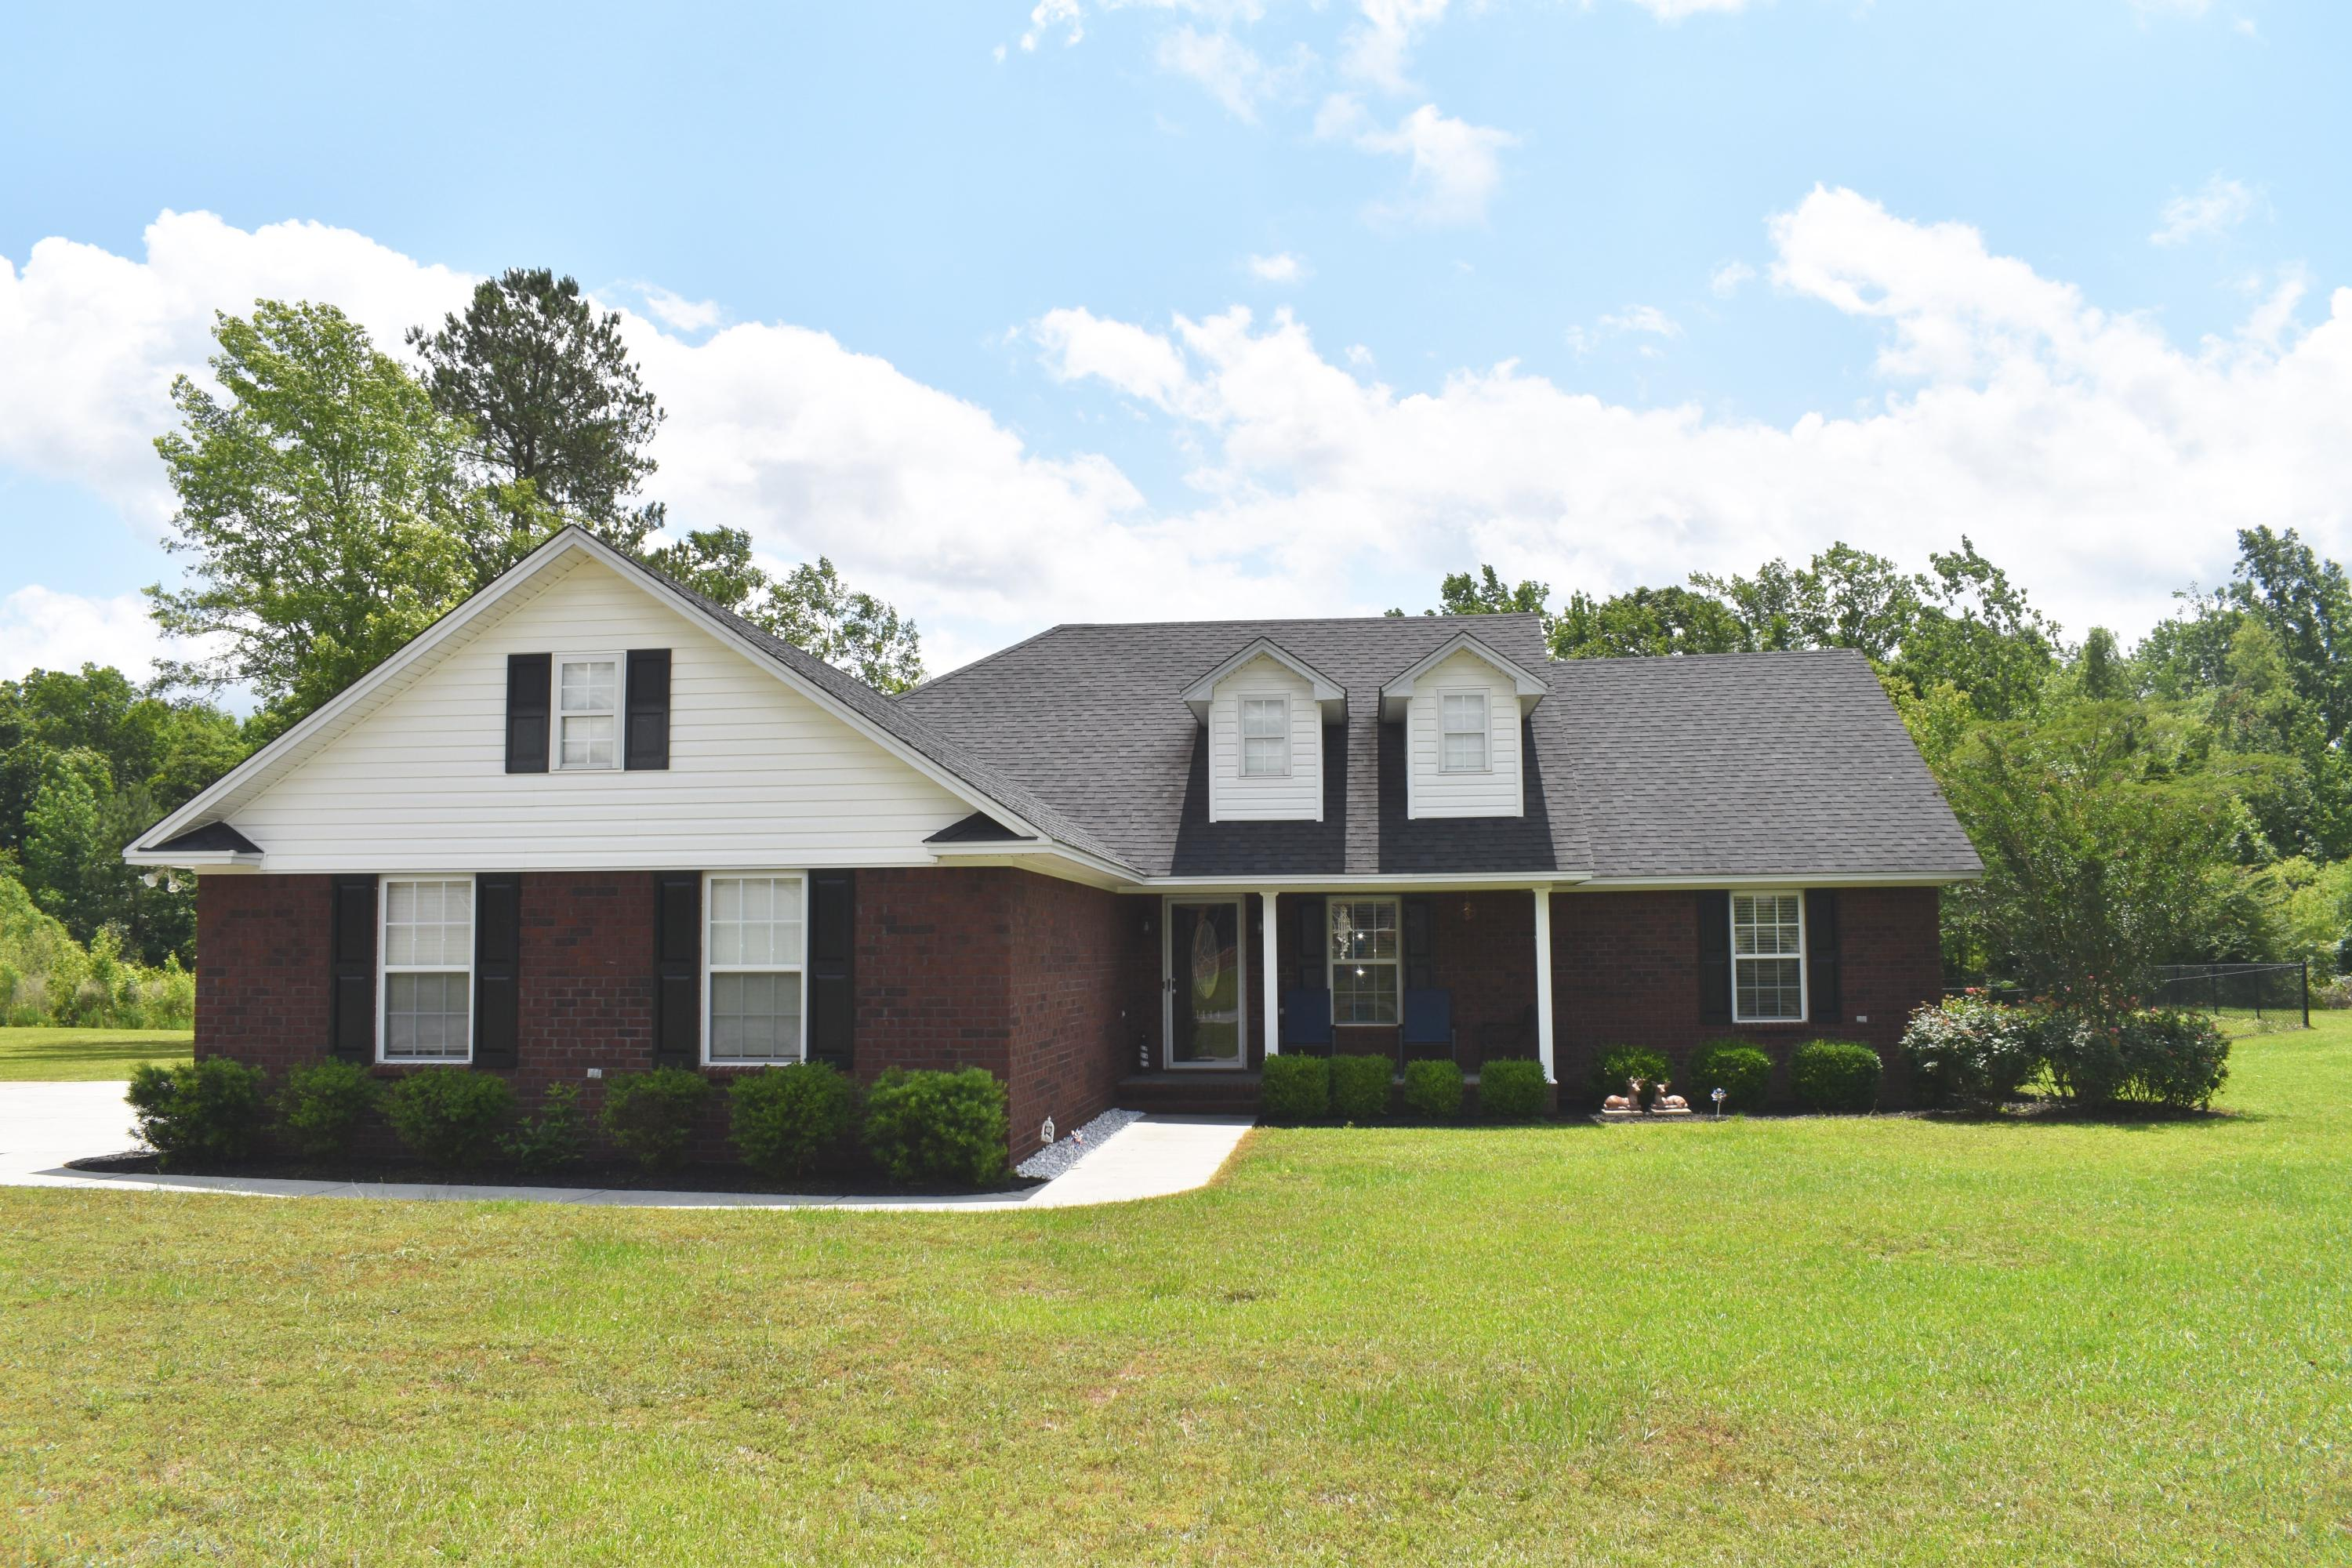 Pine Knoll Homes For Sale - 1444 Loblolly, Manning, SC - 38